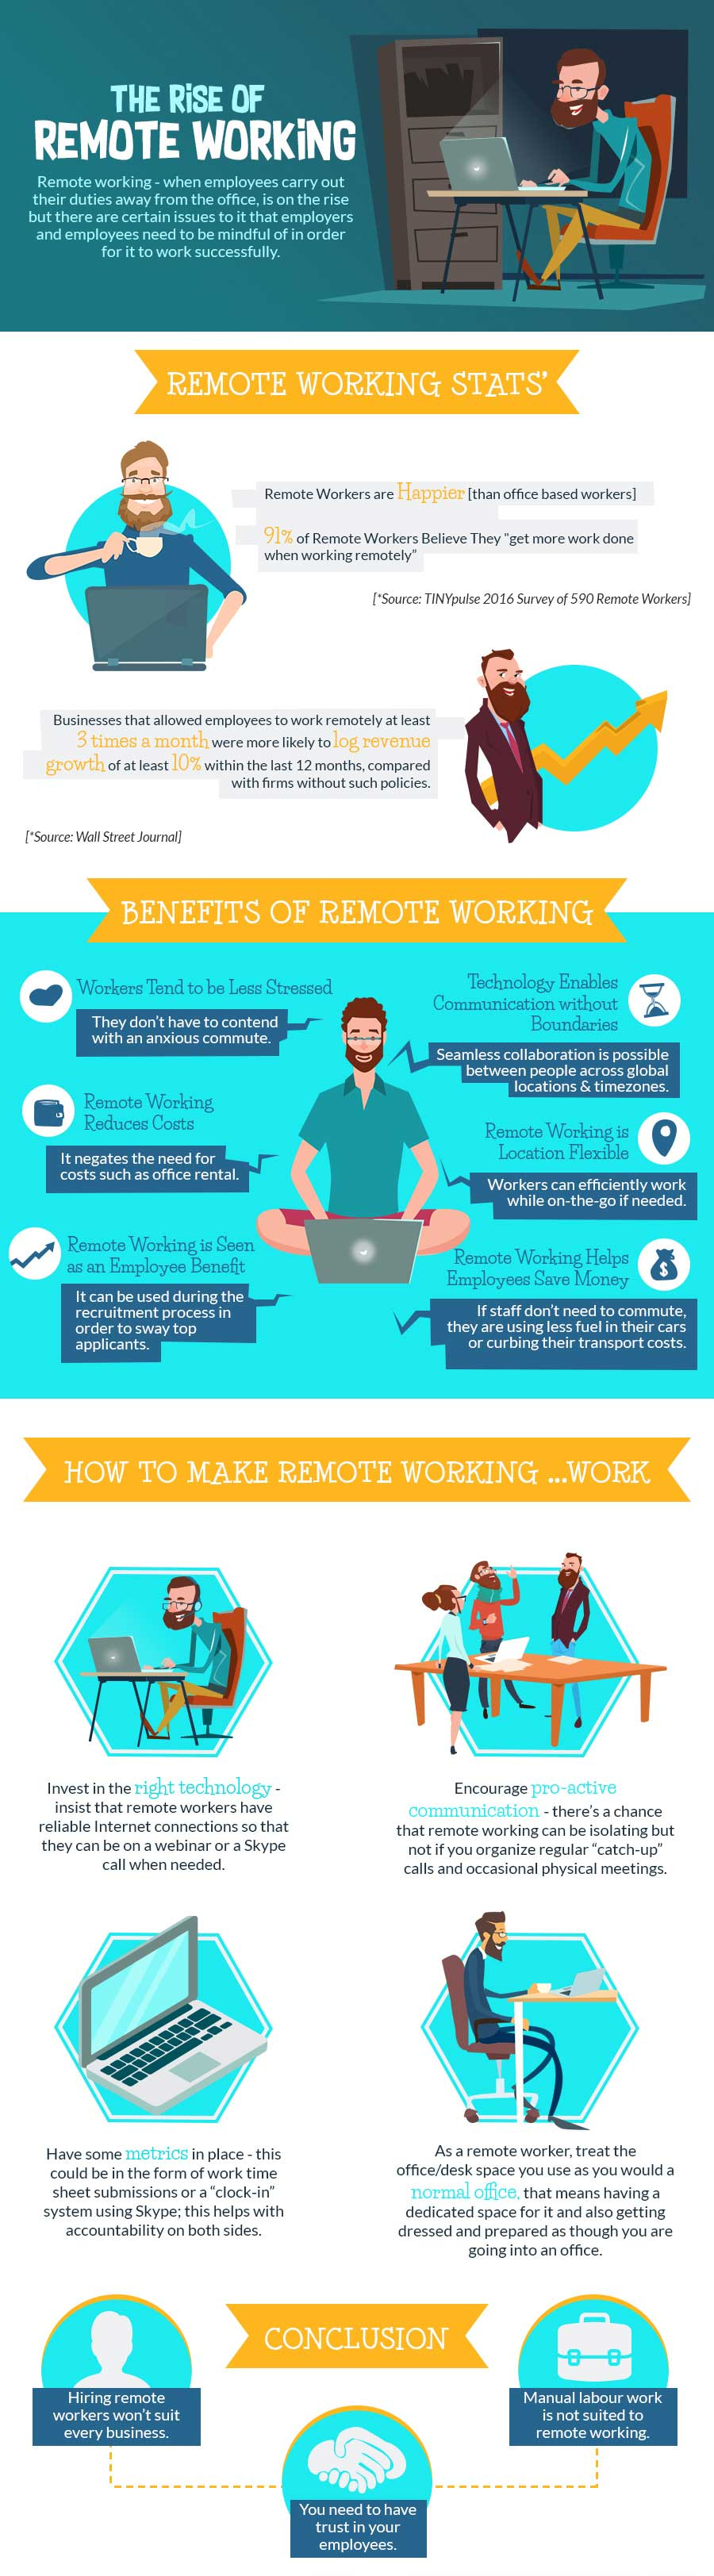 Infographic about the rise of remote working